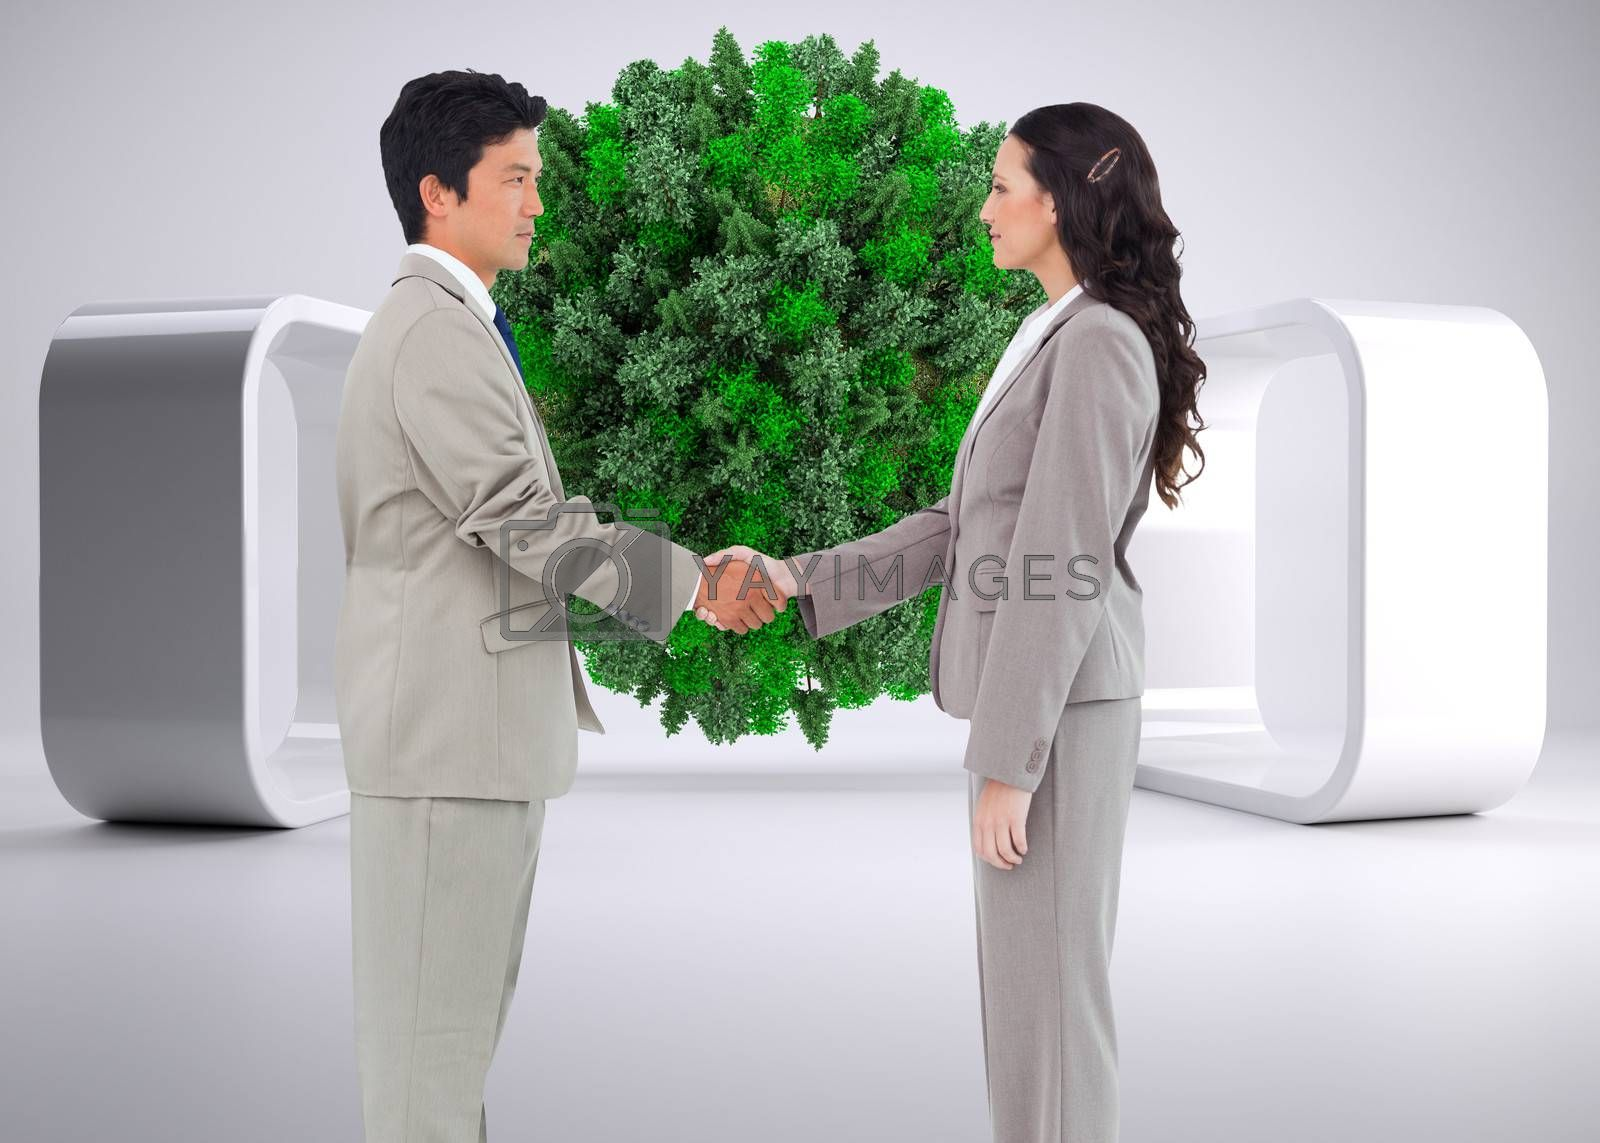 Composite image of side view of hand shaking partners by Wavebreakmedia